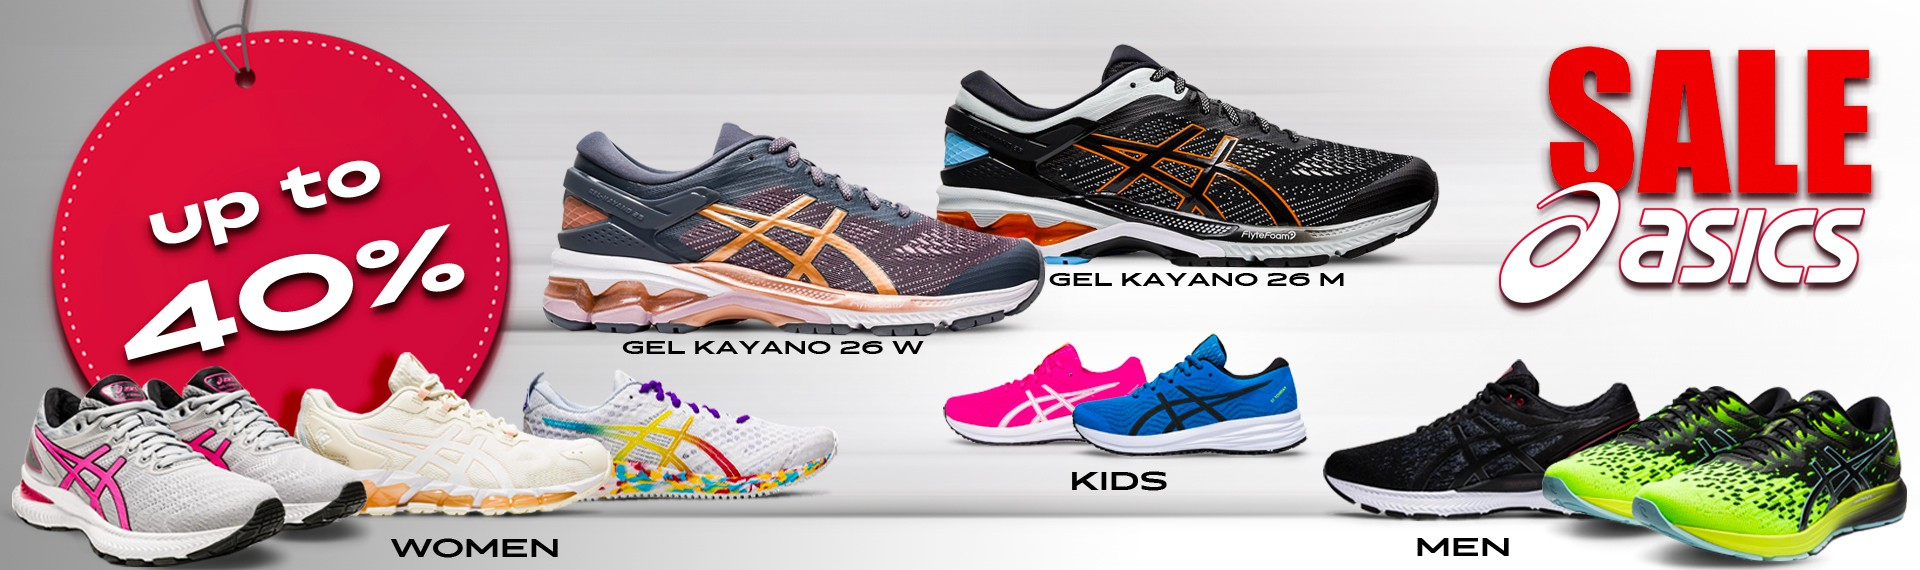 Asics shoes up to 40%